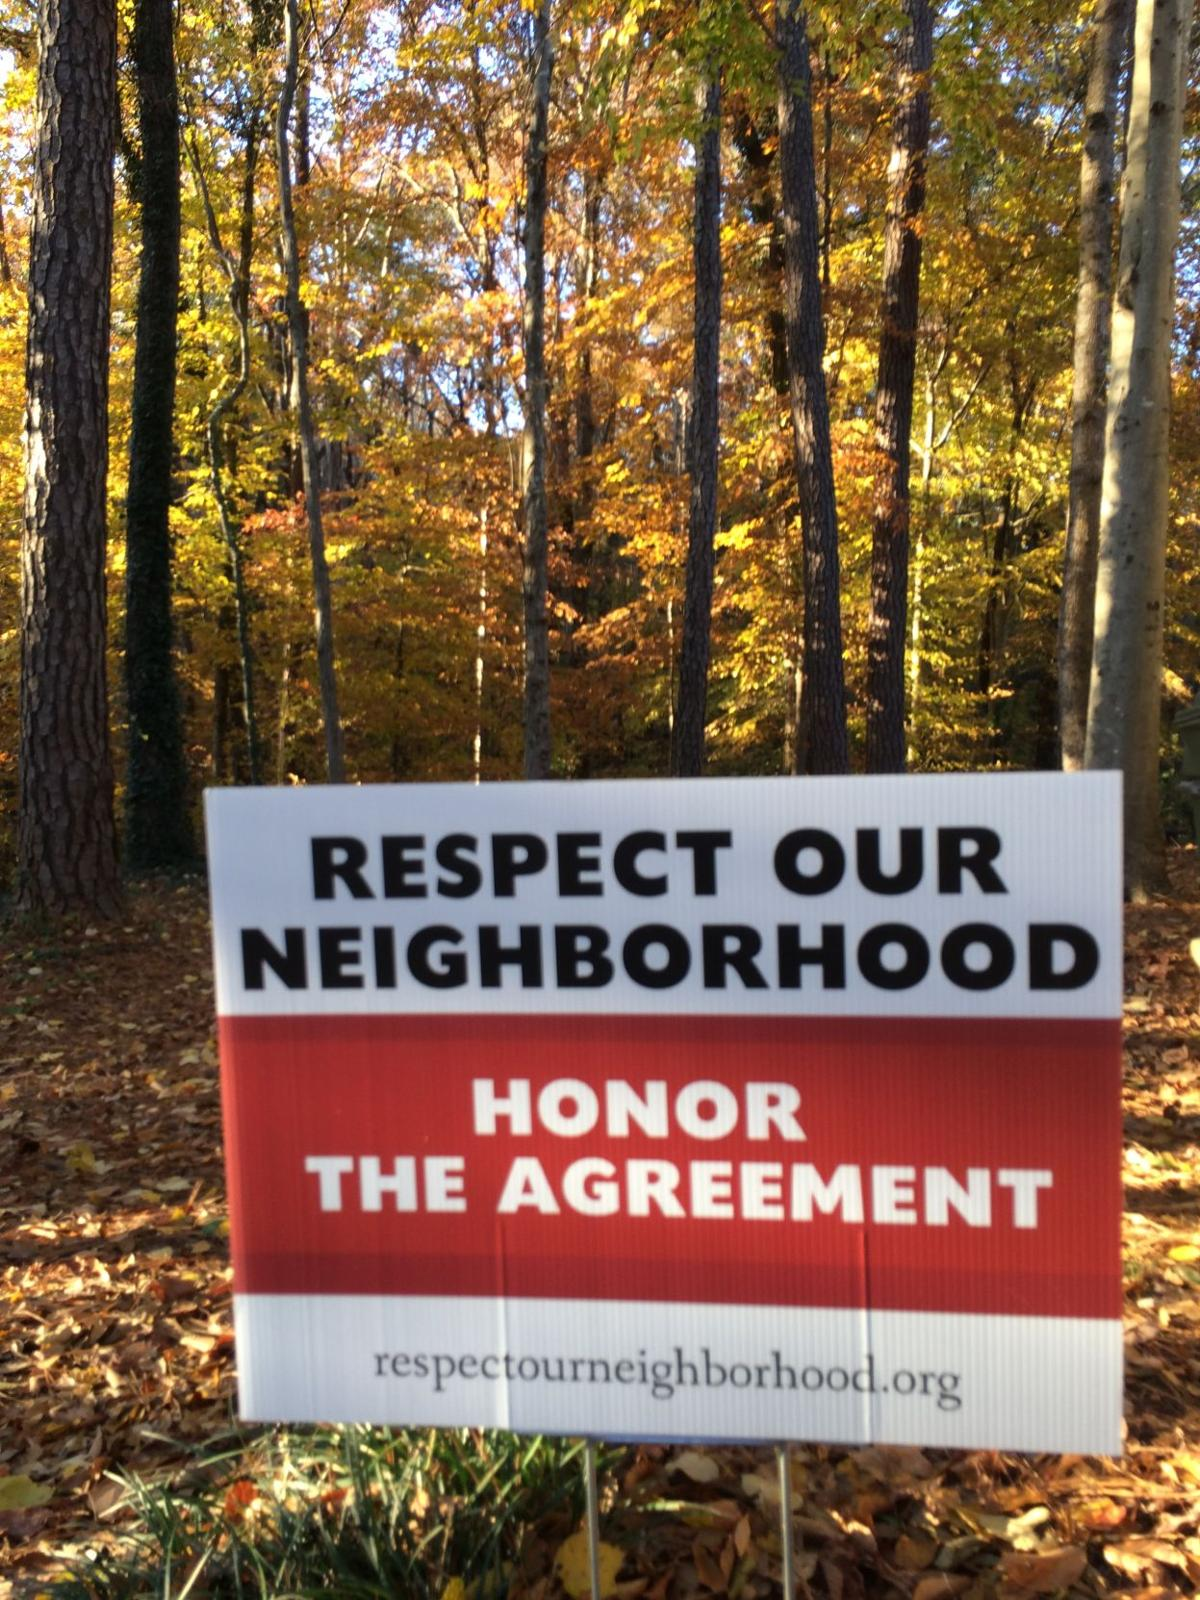 Yard sign Holy Spirit-neighborhood agreement